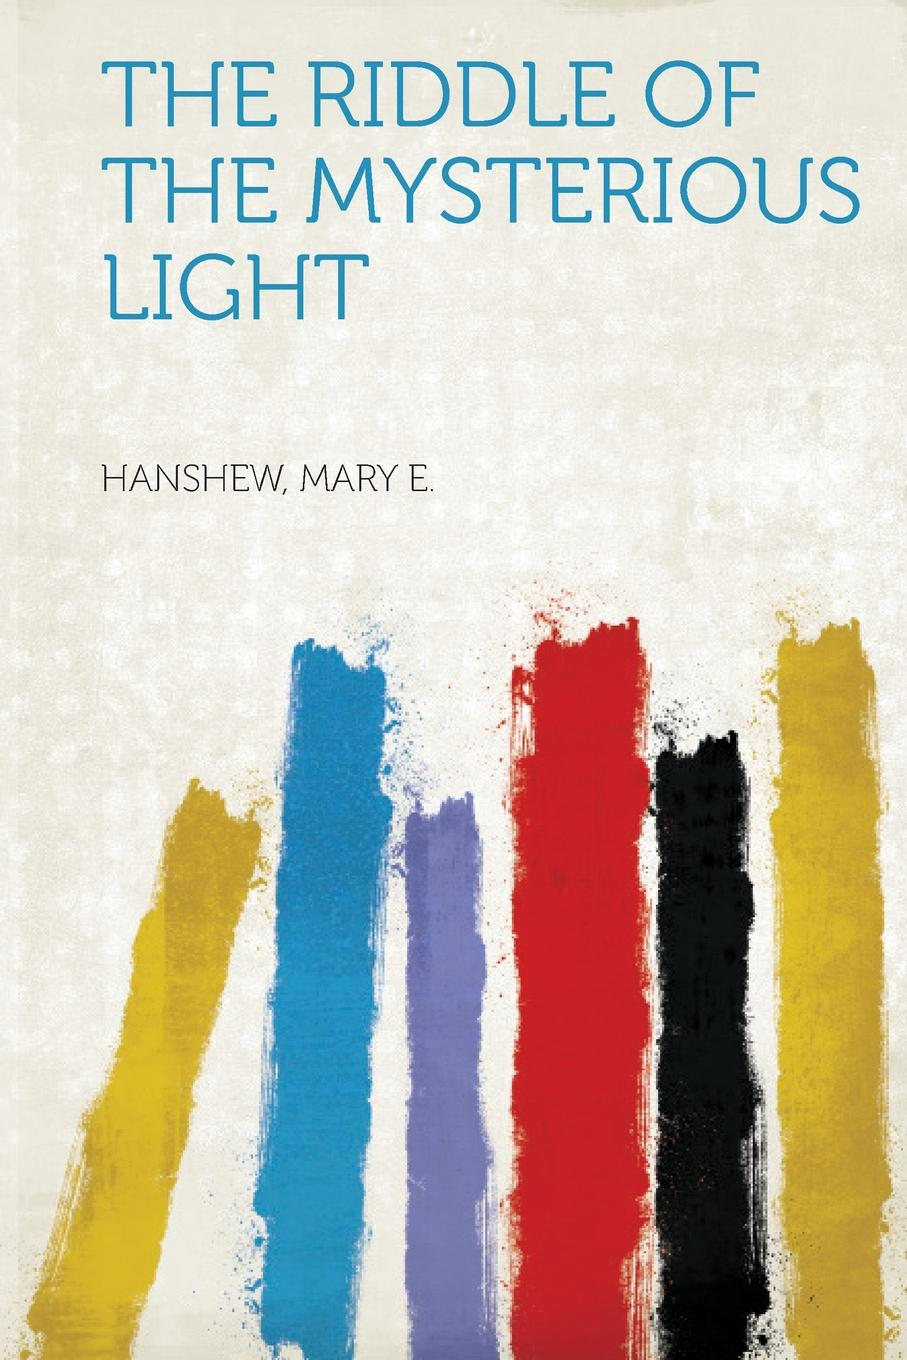 The Riddle of the Mysterious Light hanshew mary e the riddle of the mysterious light